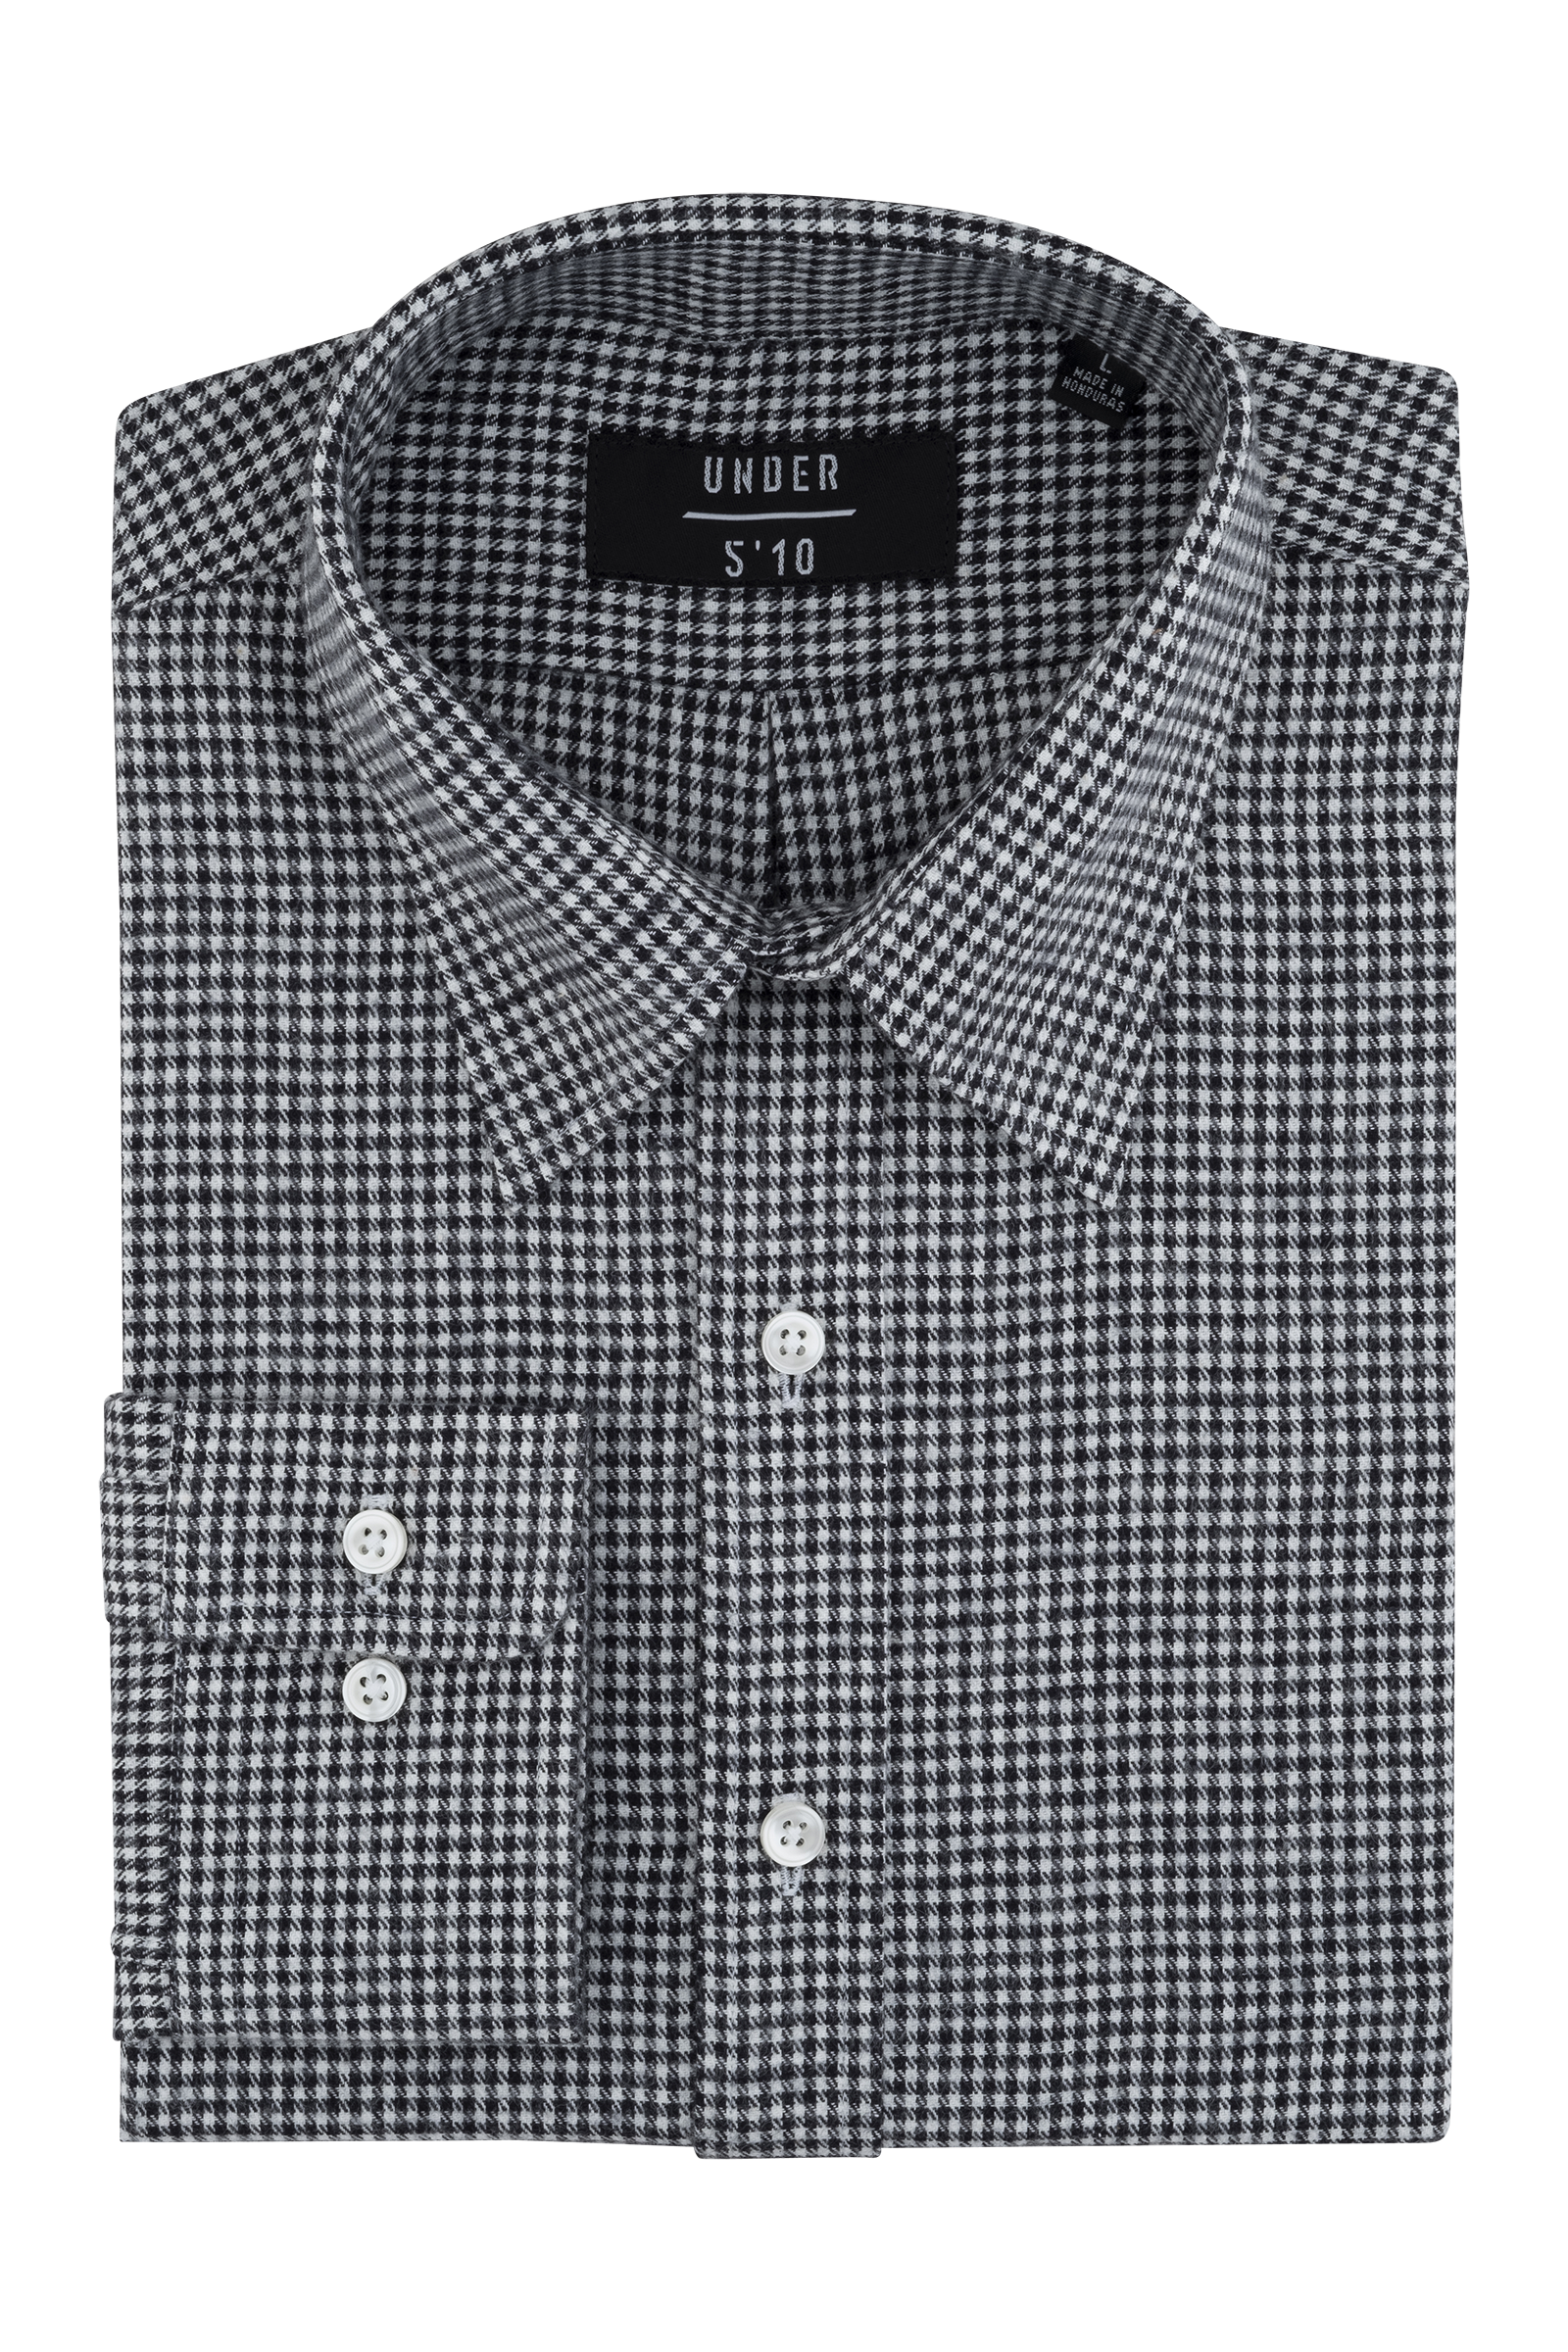 Black White Houndstooth Button Down Shirt